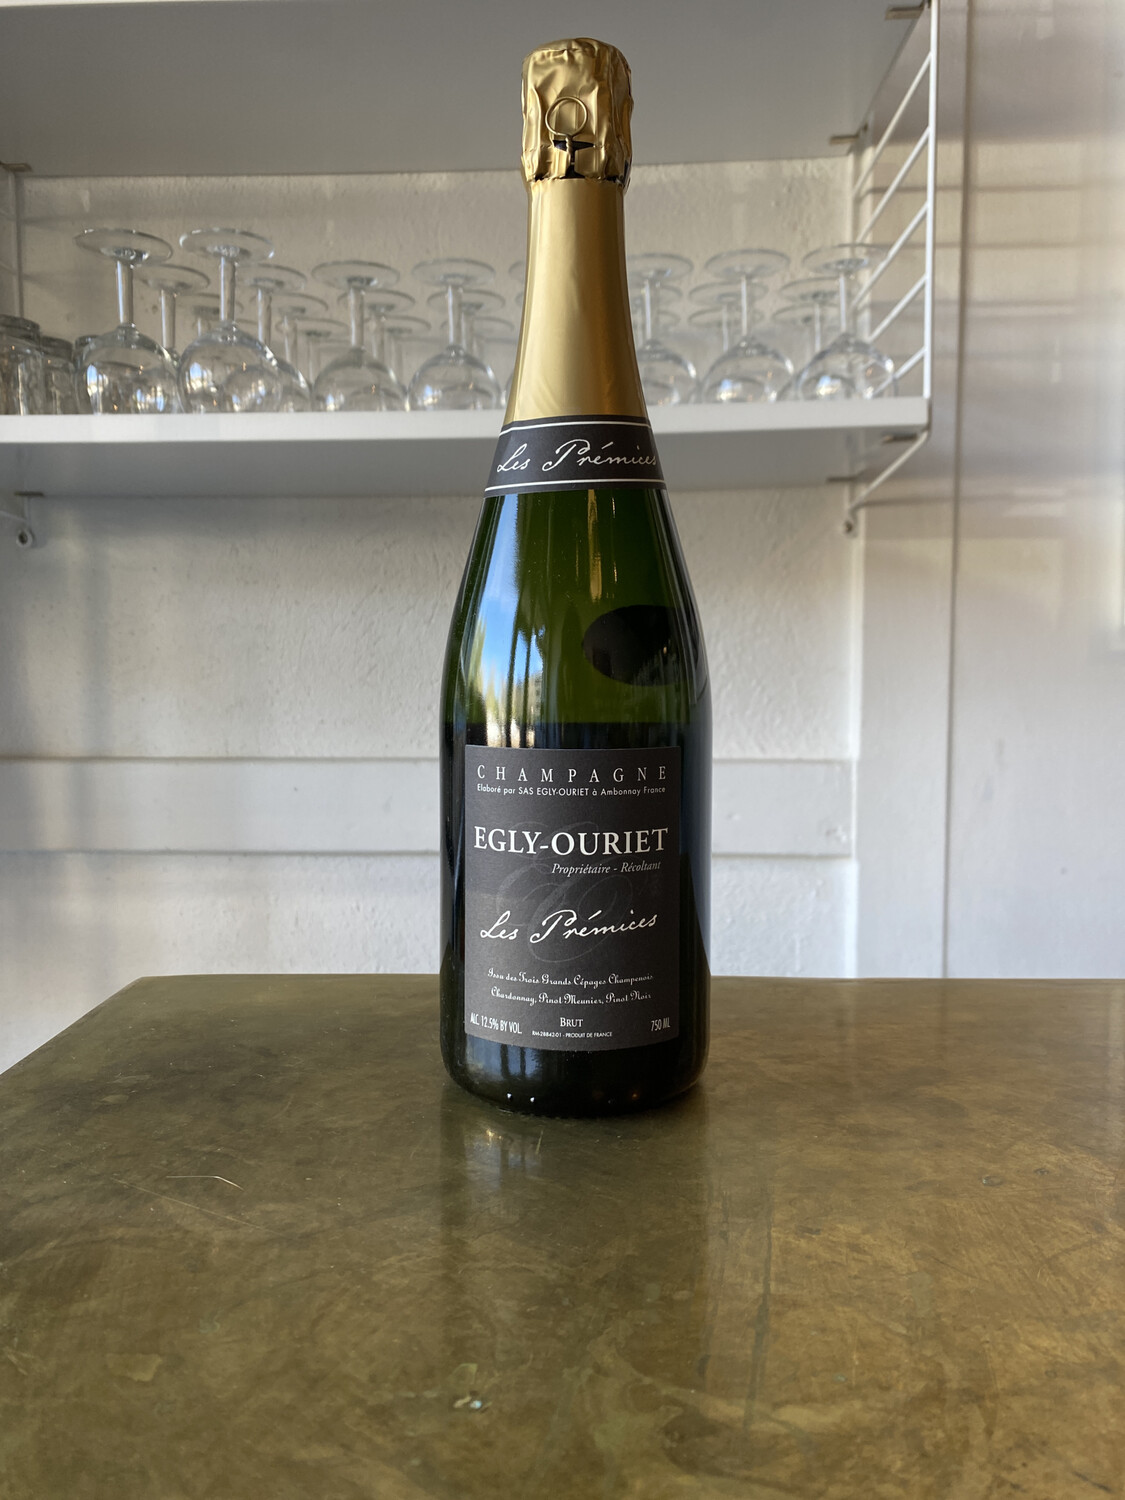 Egly-Ouriet, Champagne Brut 'Les Premices'